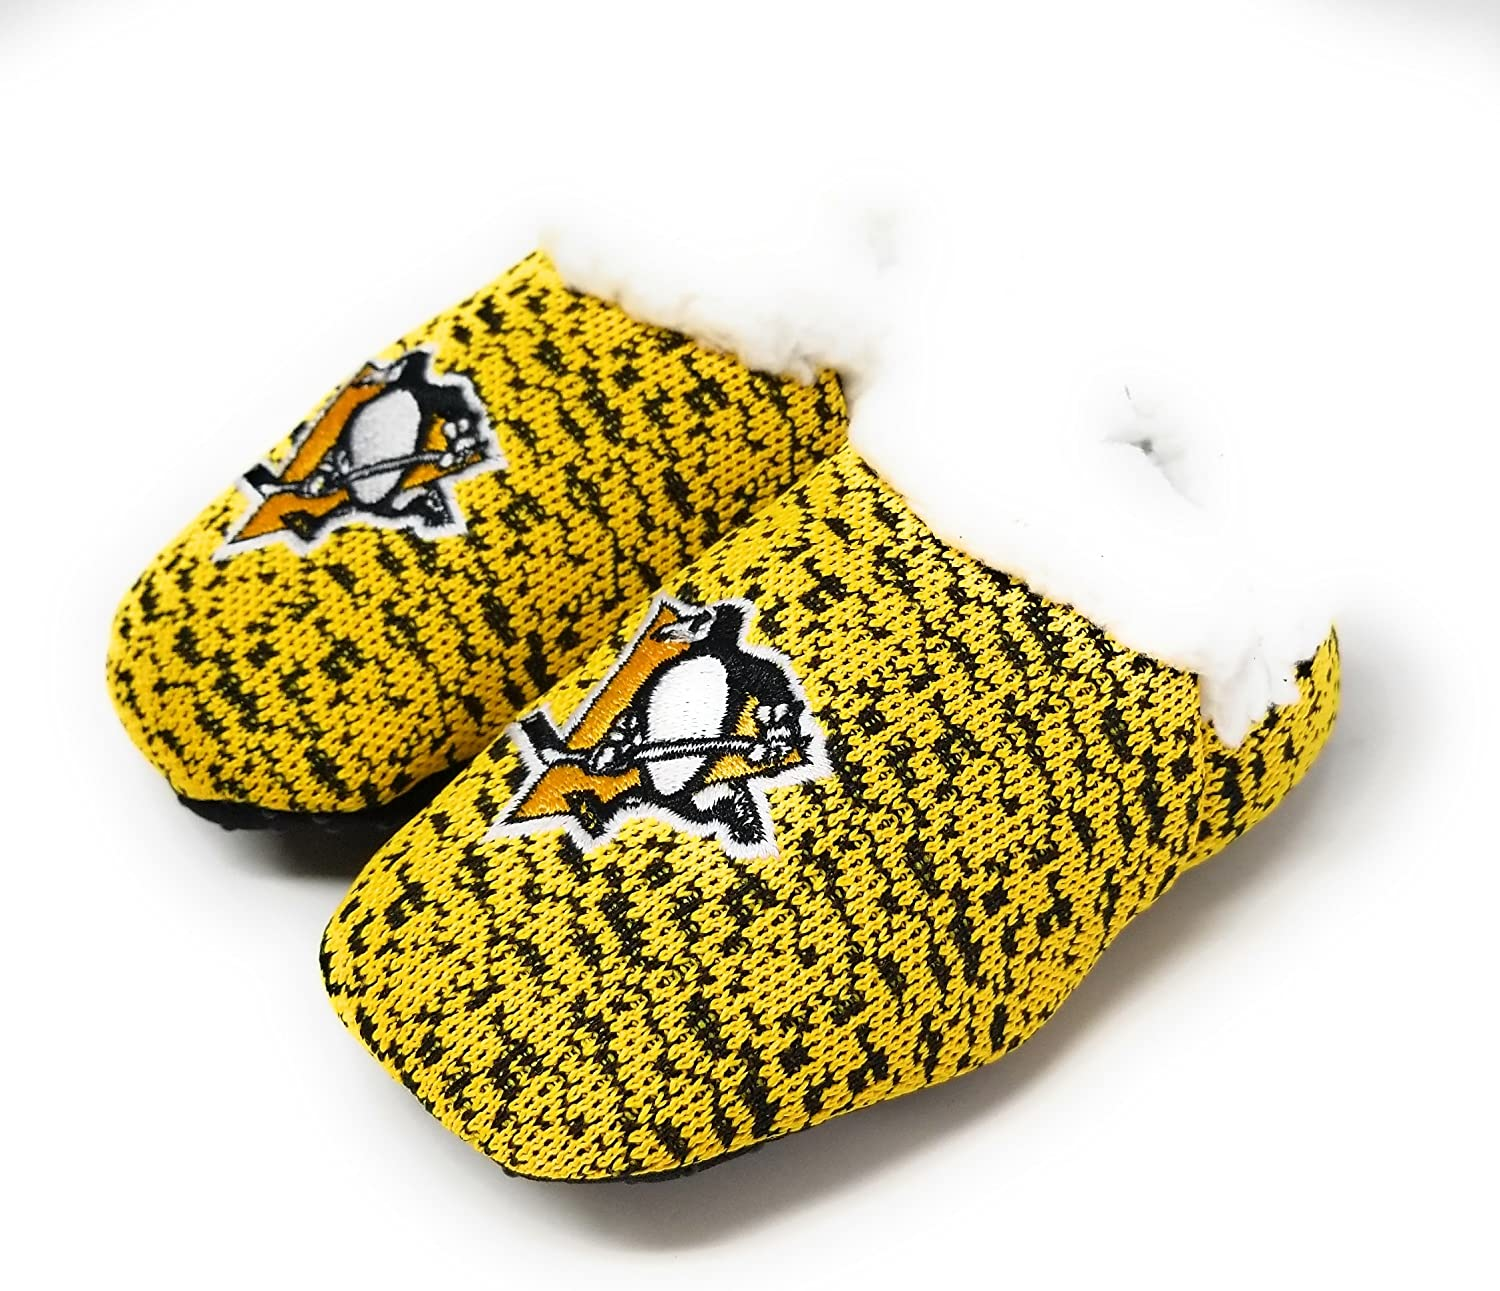 Forever Collectibles FOCO NHL Infant Knit Baby Bootie Shoe: Clothing